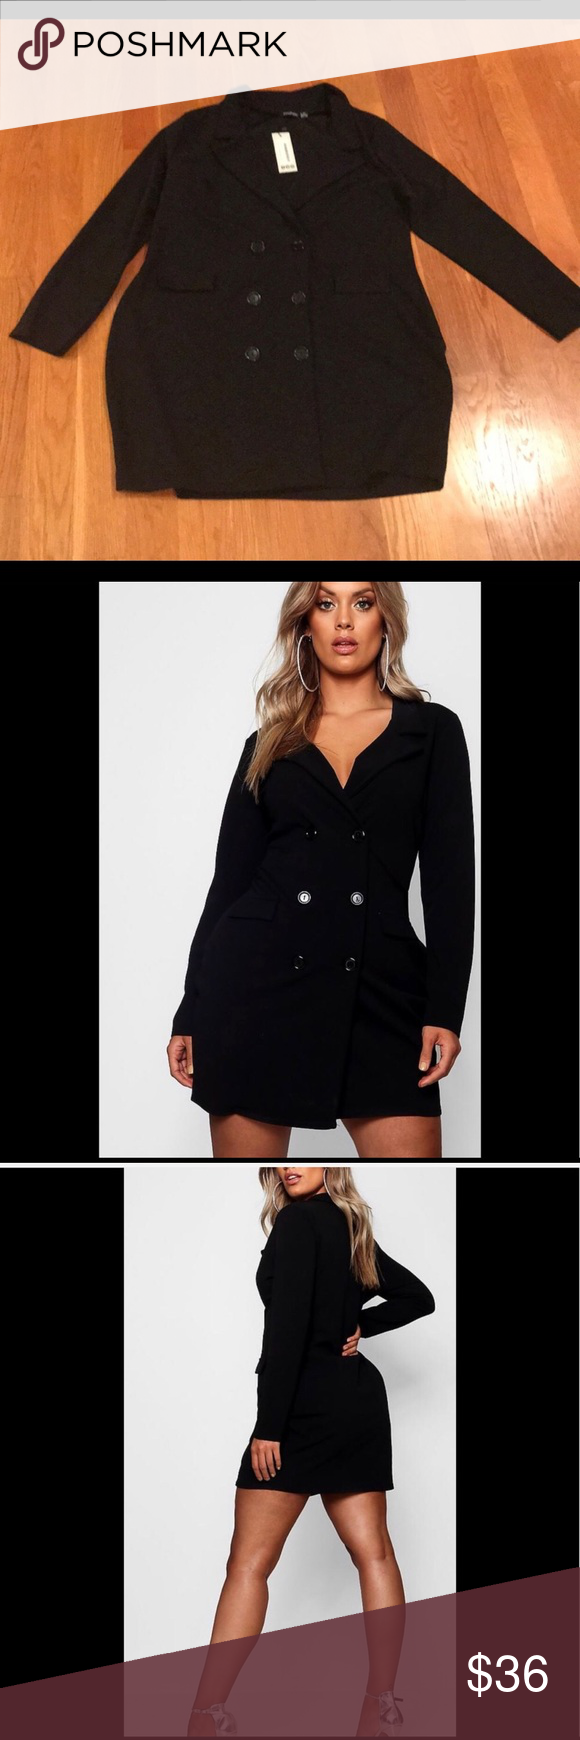 39771096467b Boohoo Dress size 20 Black Blazer Dress NWT Boohoo Plus Laura Scuba Black Blazer  Dress Size 20 New with tags Boohoo Plus Dresses Midi